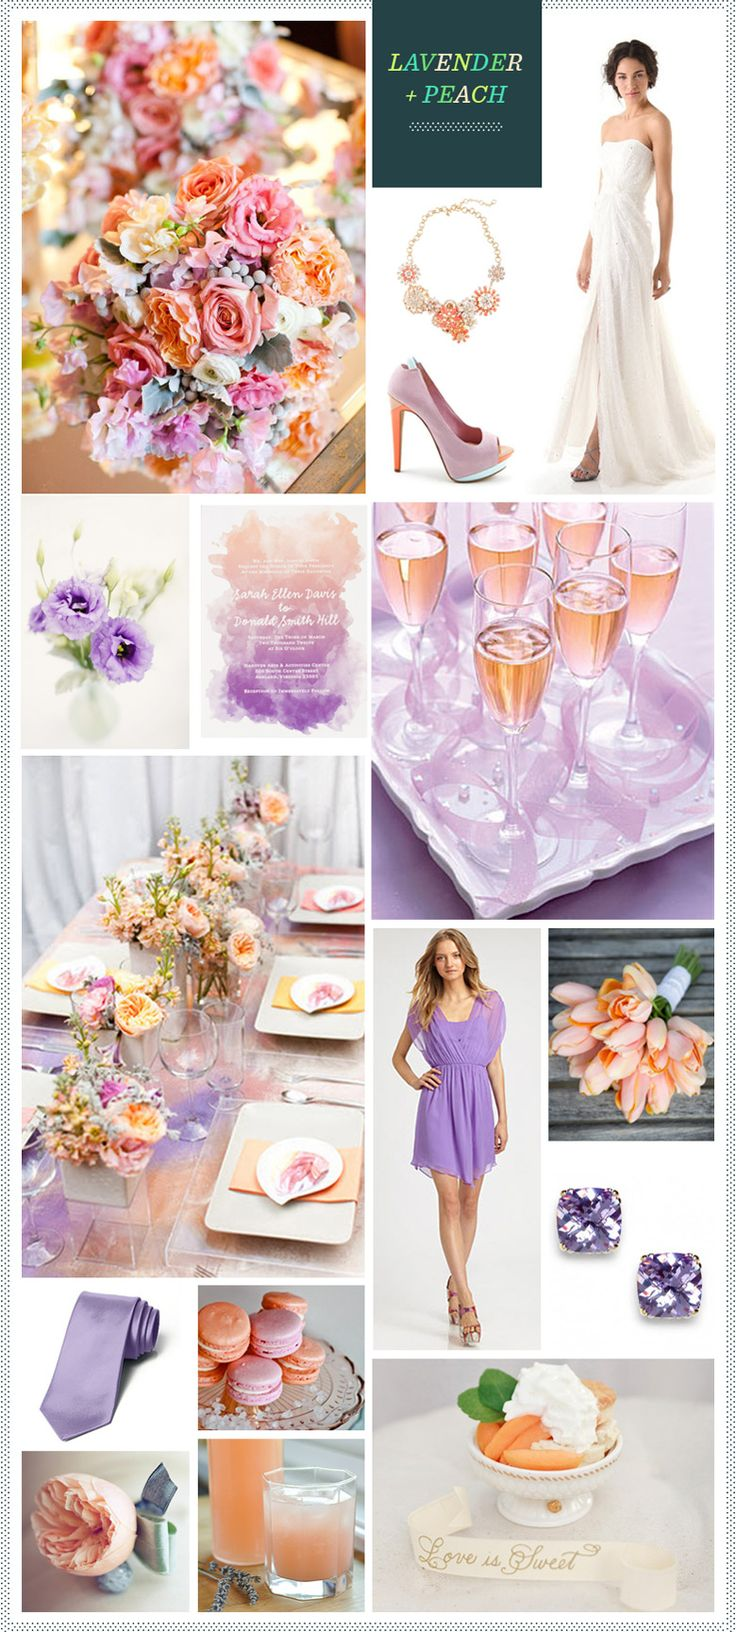 Lavender + Peach wedding inspiration